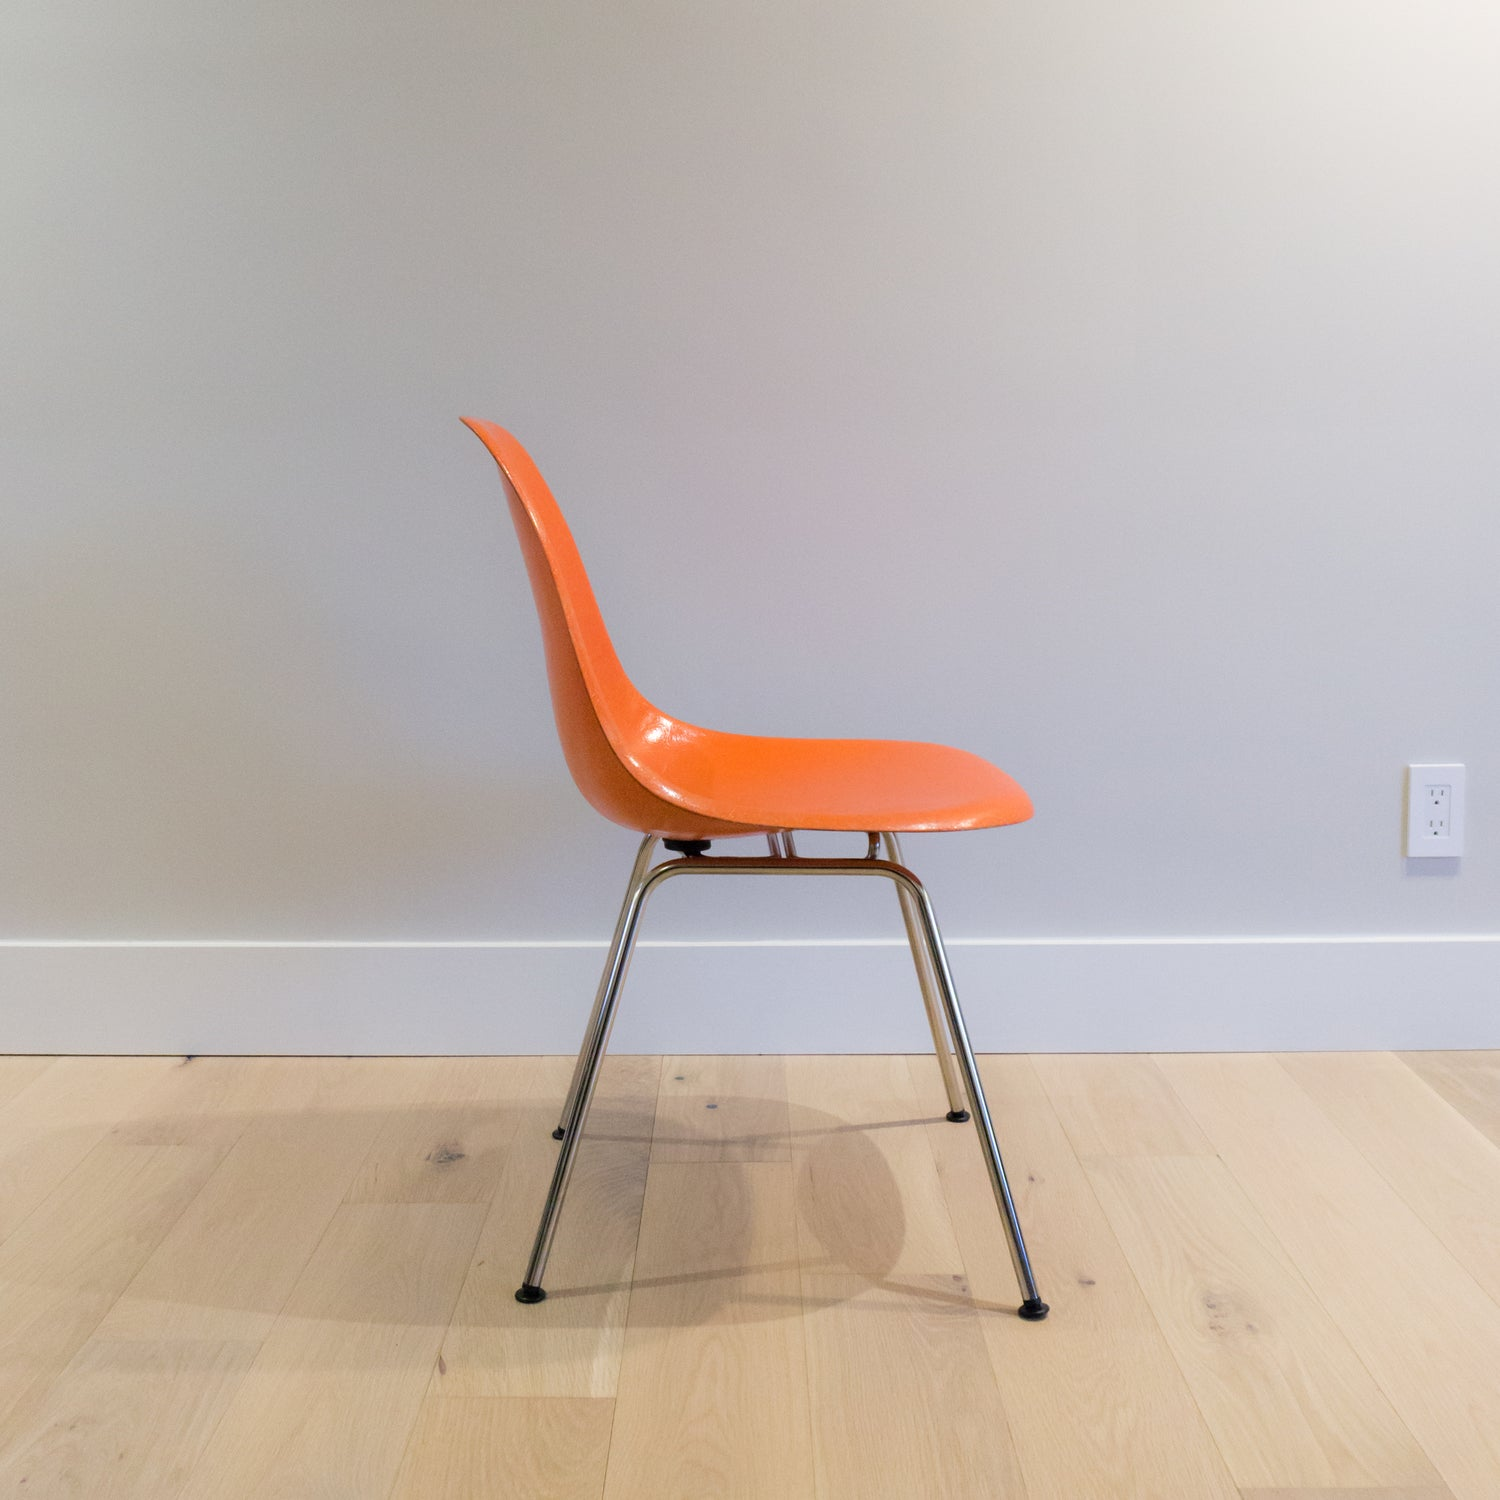 fiberglass shell chairs. herman miller vintage fiberglass shell chairs (red orange) l